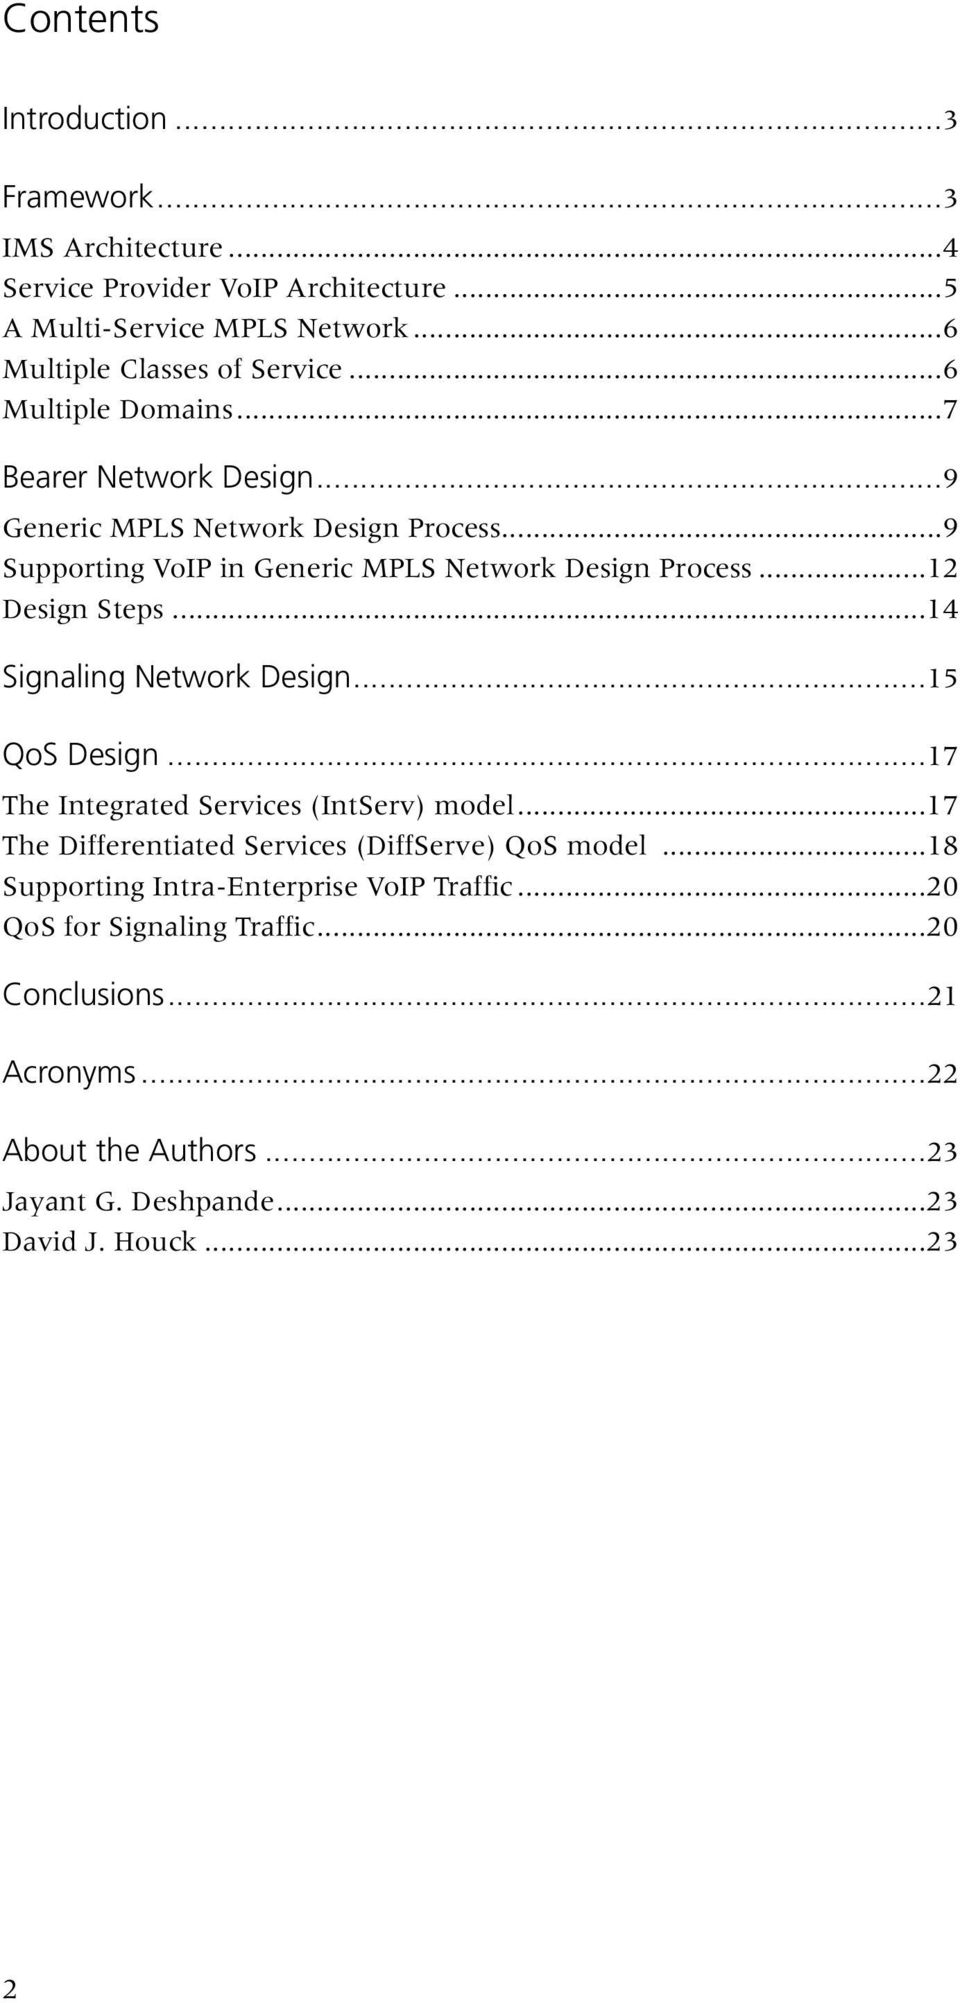 ..14 Signaling Network Design...15 QoS Design...17 The Integrated Services (IntServ) model...17 The Differentiated Services (DiffServe) QoS model.